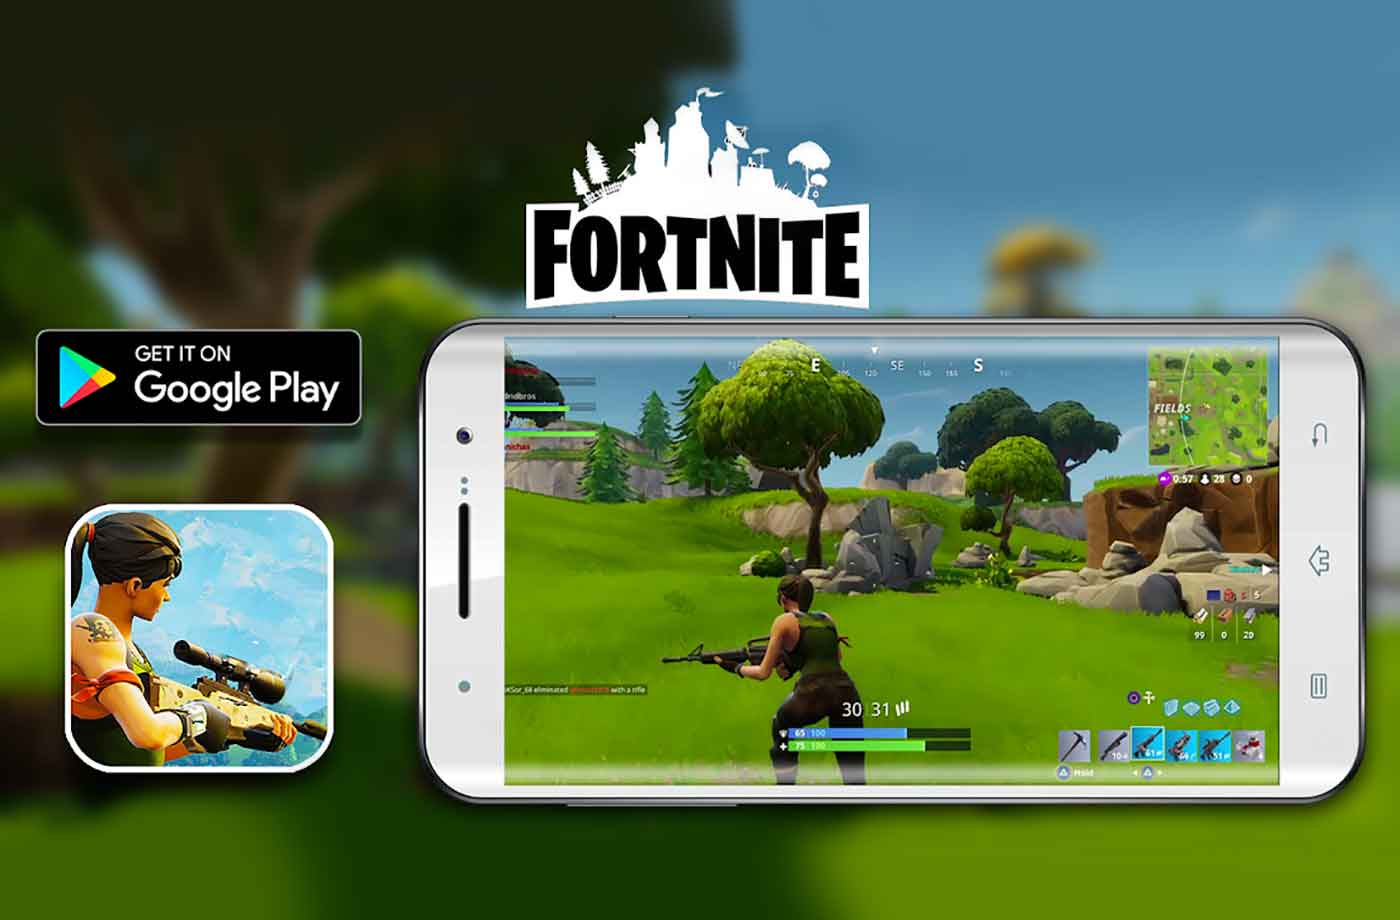 fortnite android game download apk